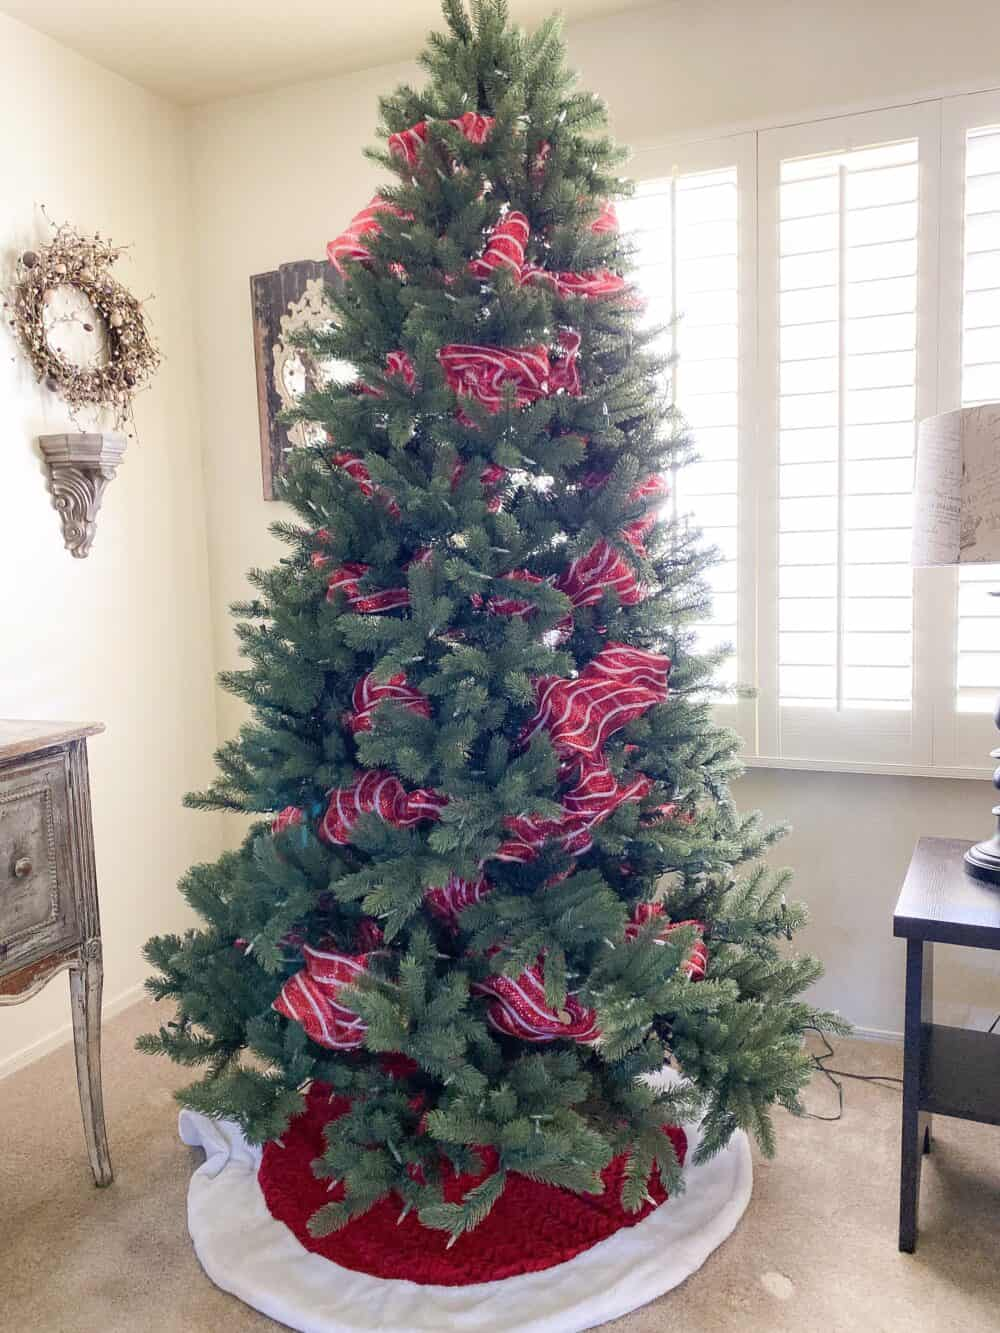 How To Decorate A Candy Christmas Tree Picky Palate